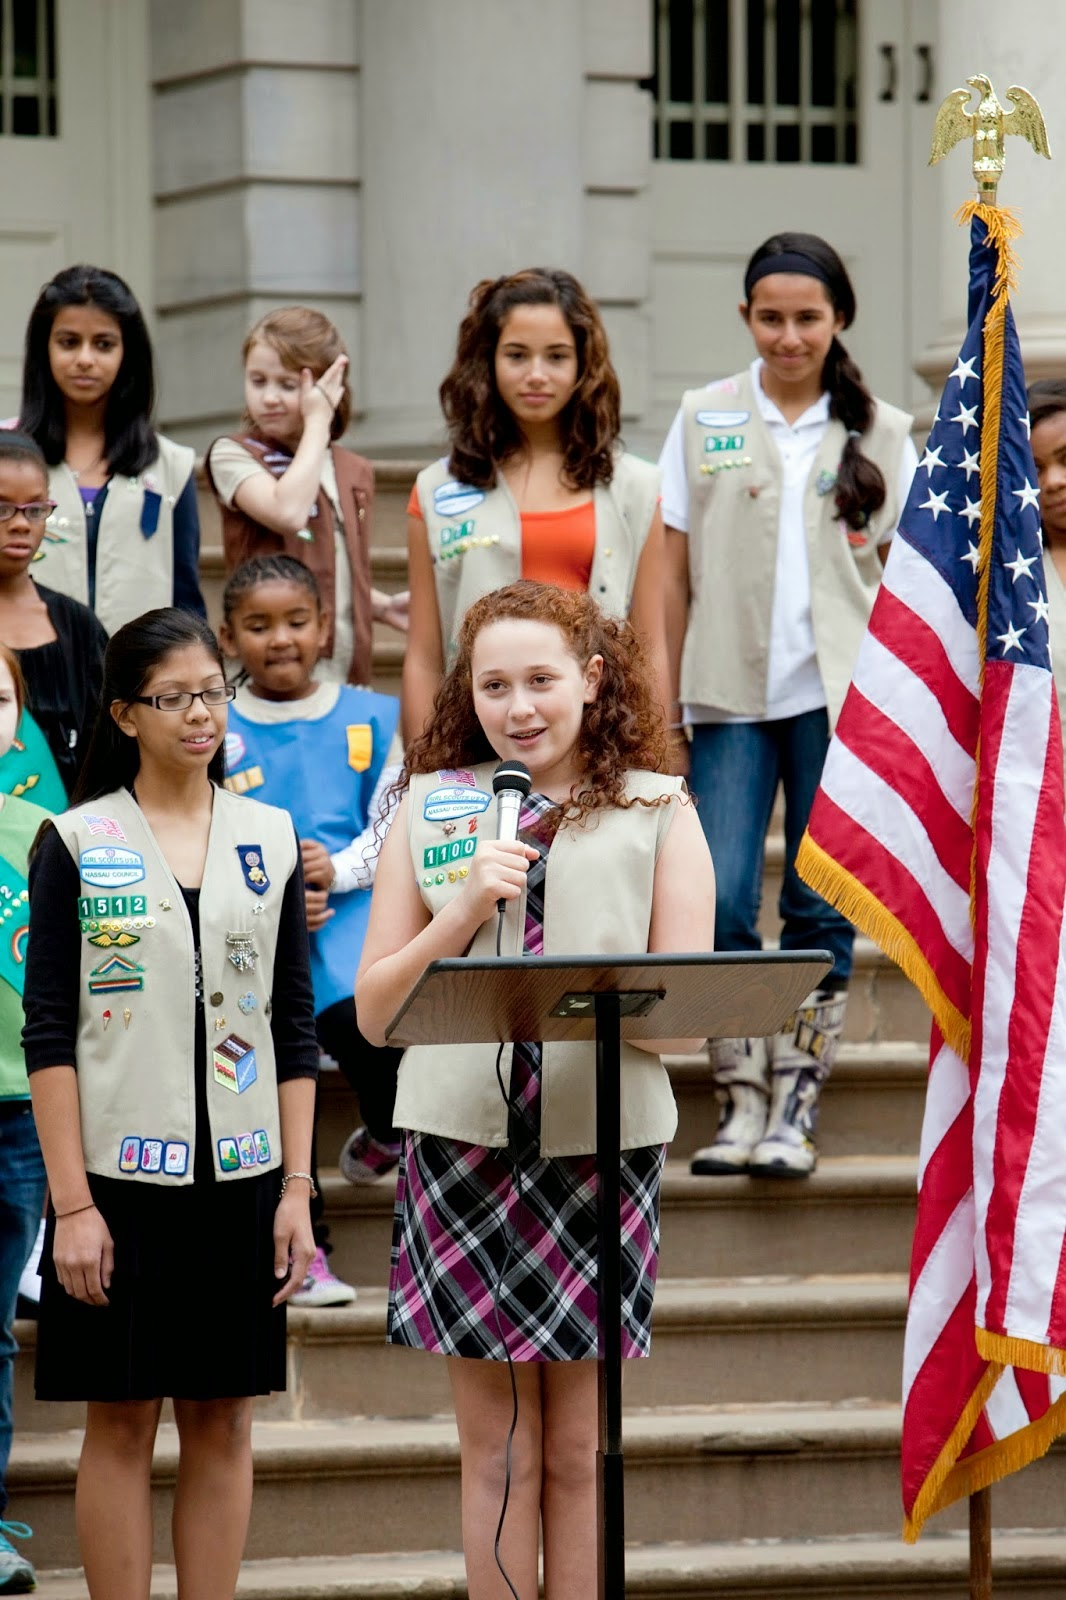 Girl Scout Cookie Nail Art: Lessons In Leadership: Girls See Themselves In Politics